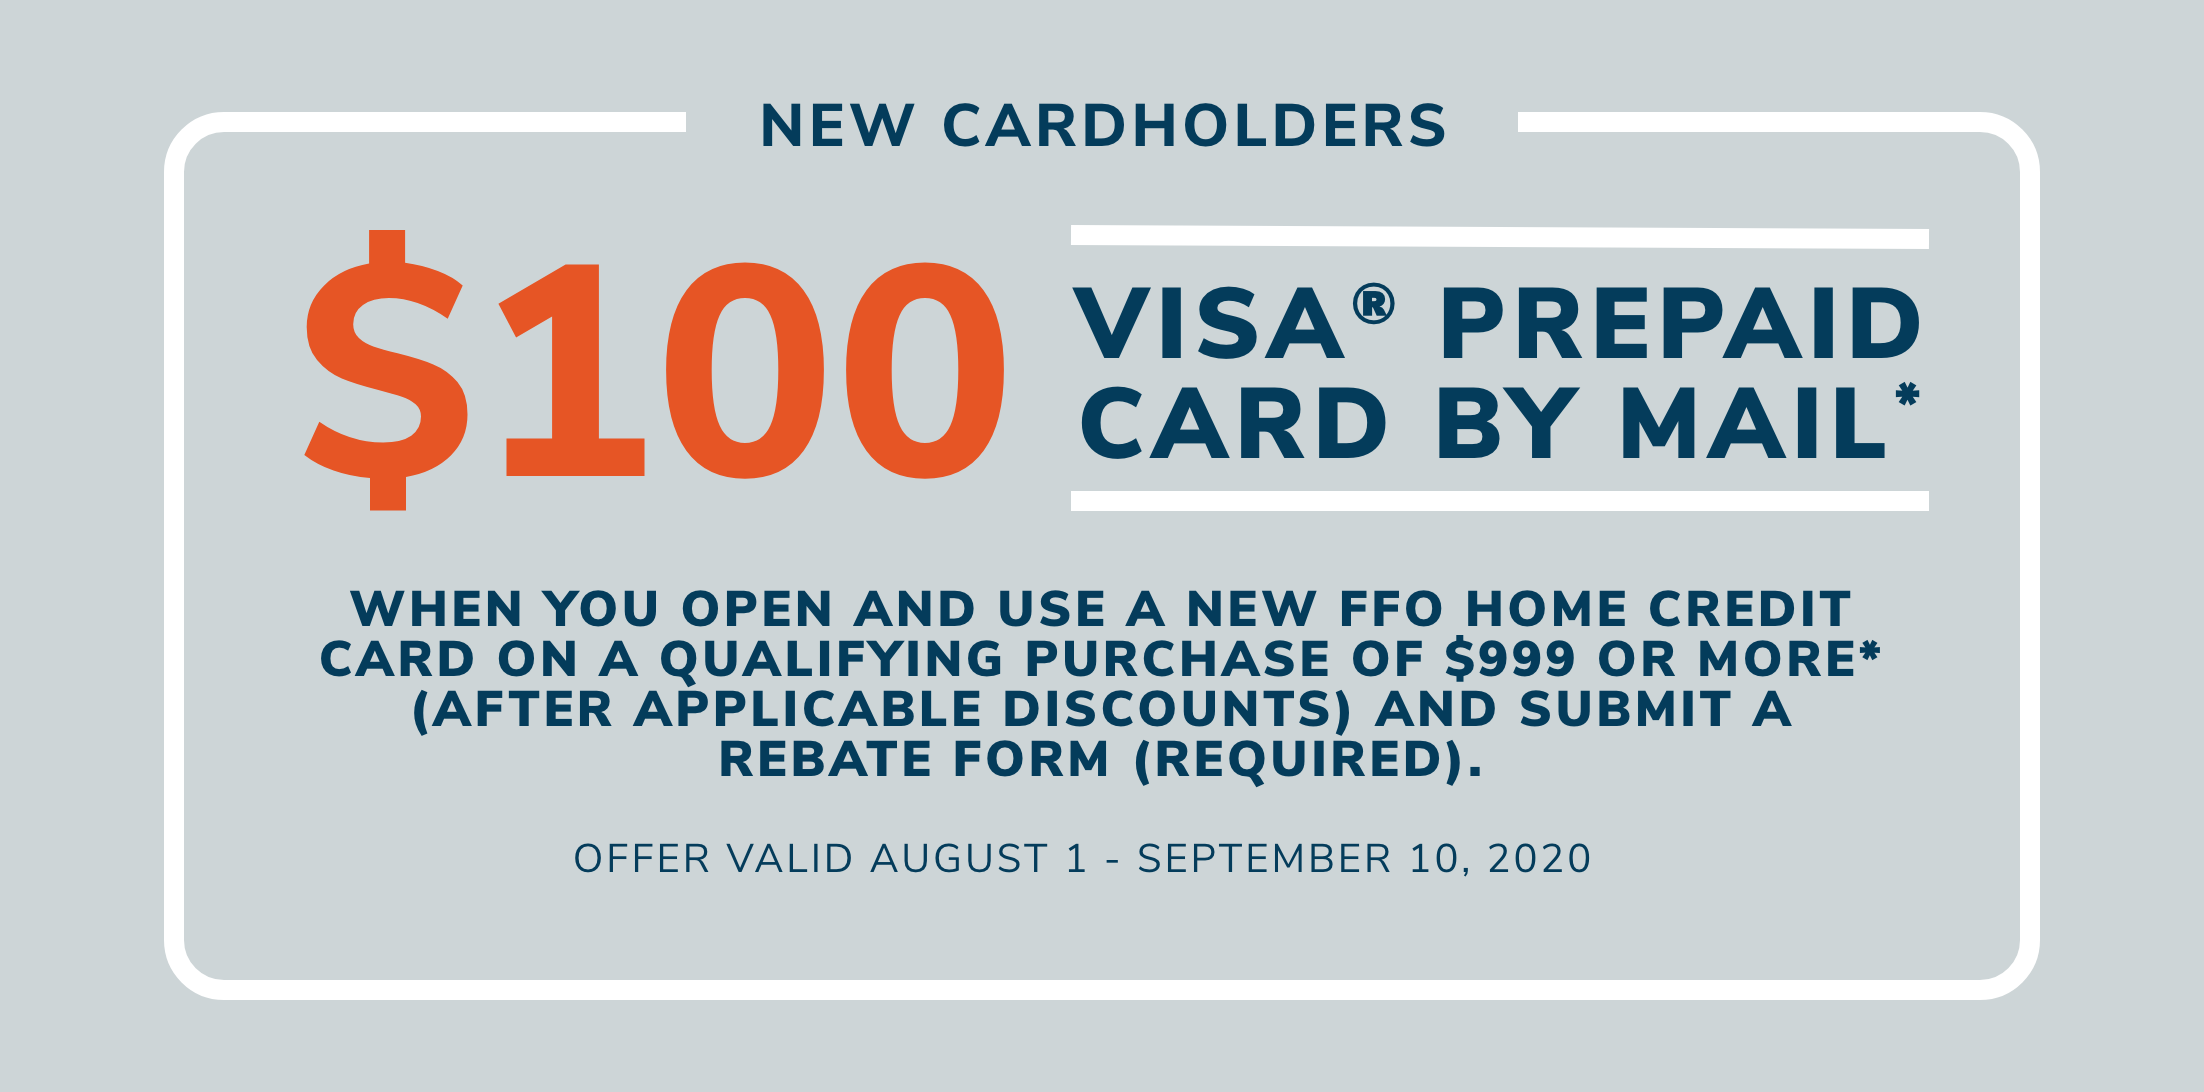 Get a $100 Prepaid Visa Gift Card with your first purchase of $999 or more on a new FFO Home Credit Card.